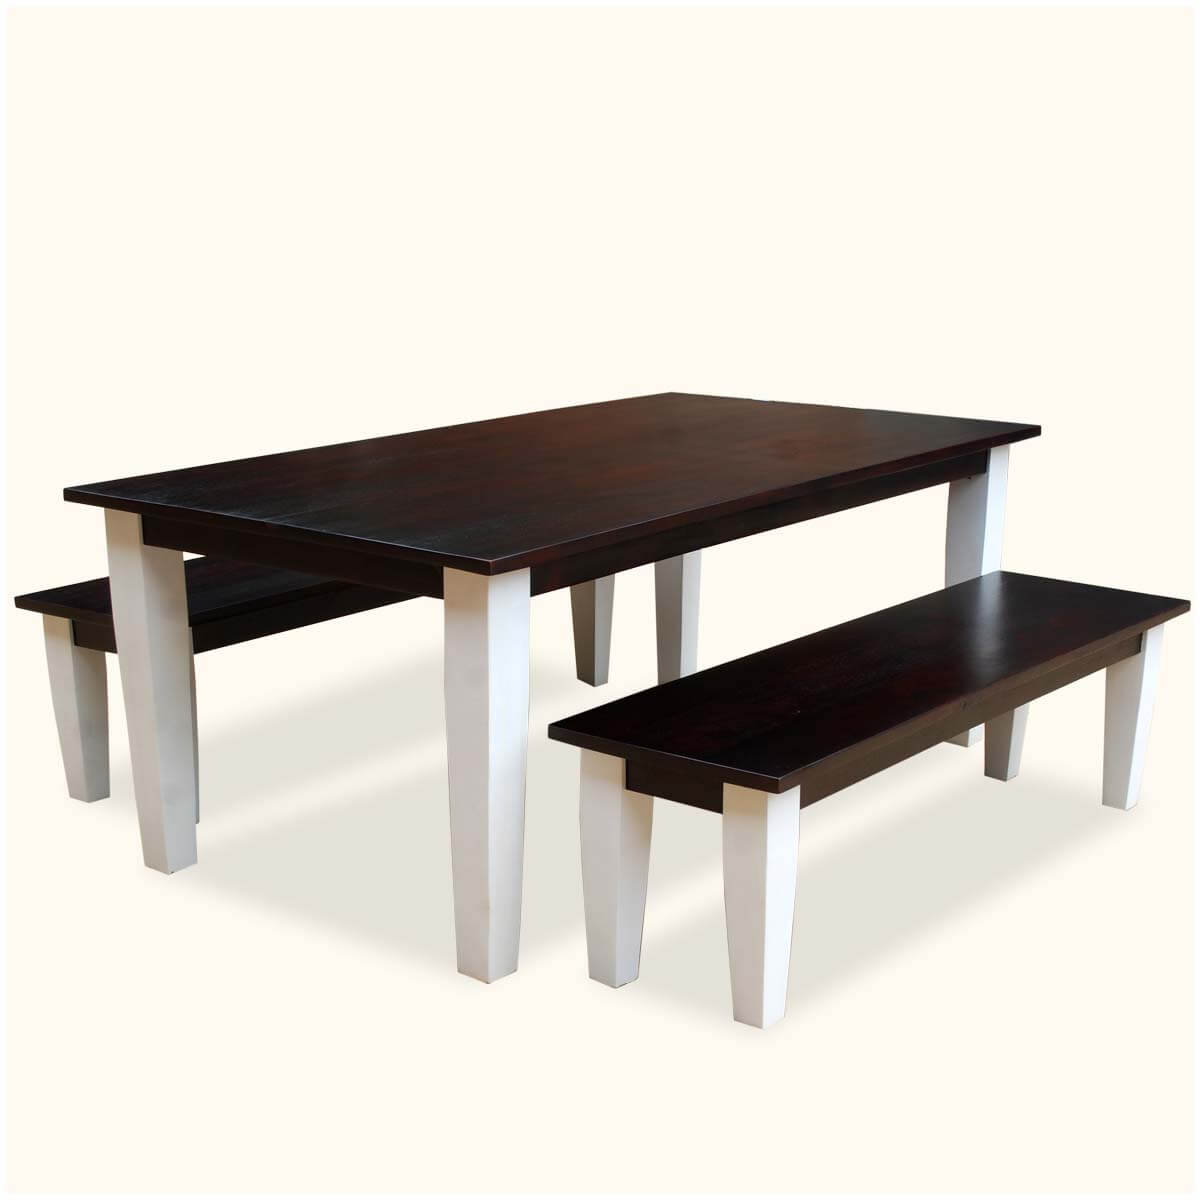 Sierra Contemporary Mango Wood Dining Table & Benches